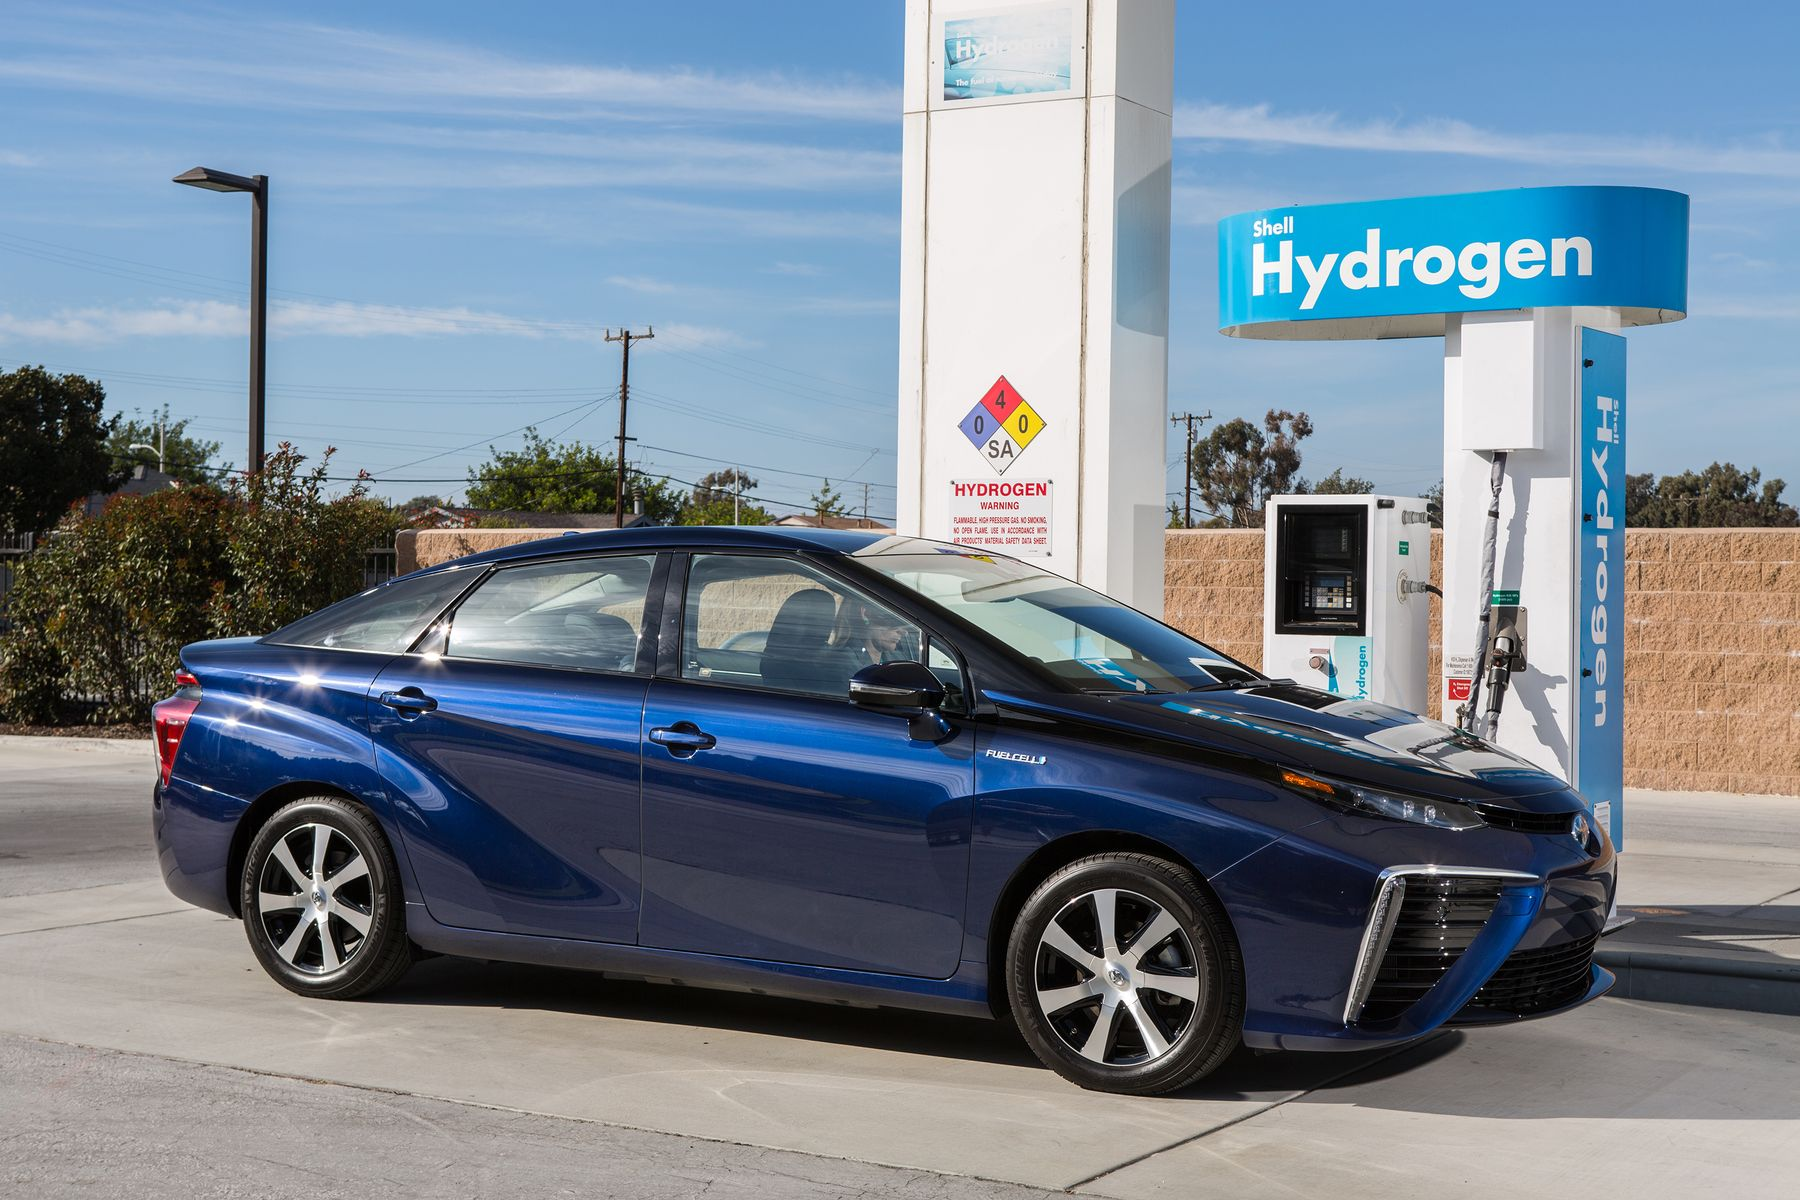 Dubai Gets the First Hydrogen Fuel Station in the Middle East